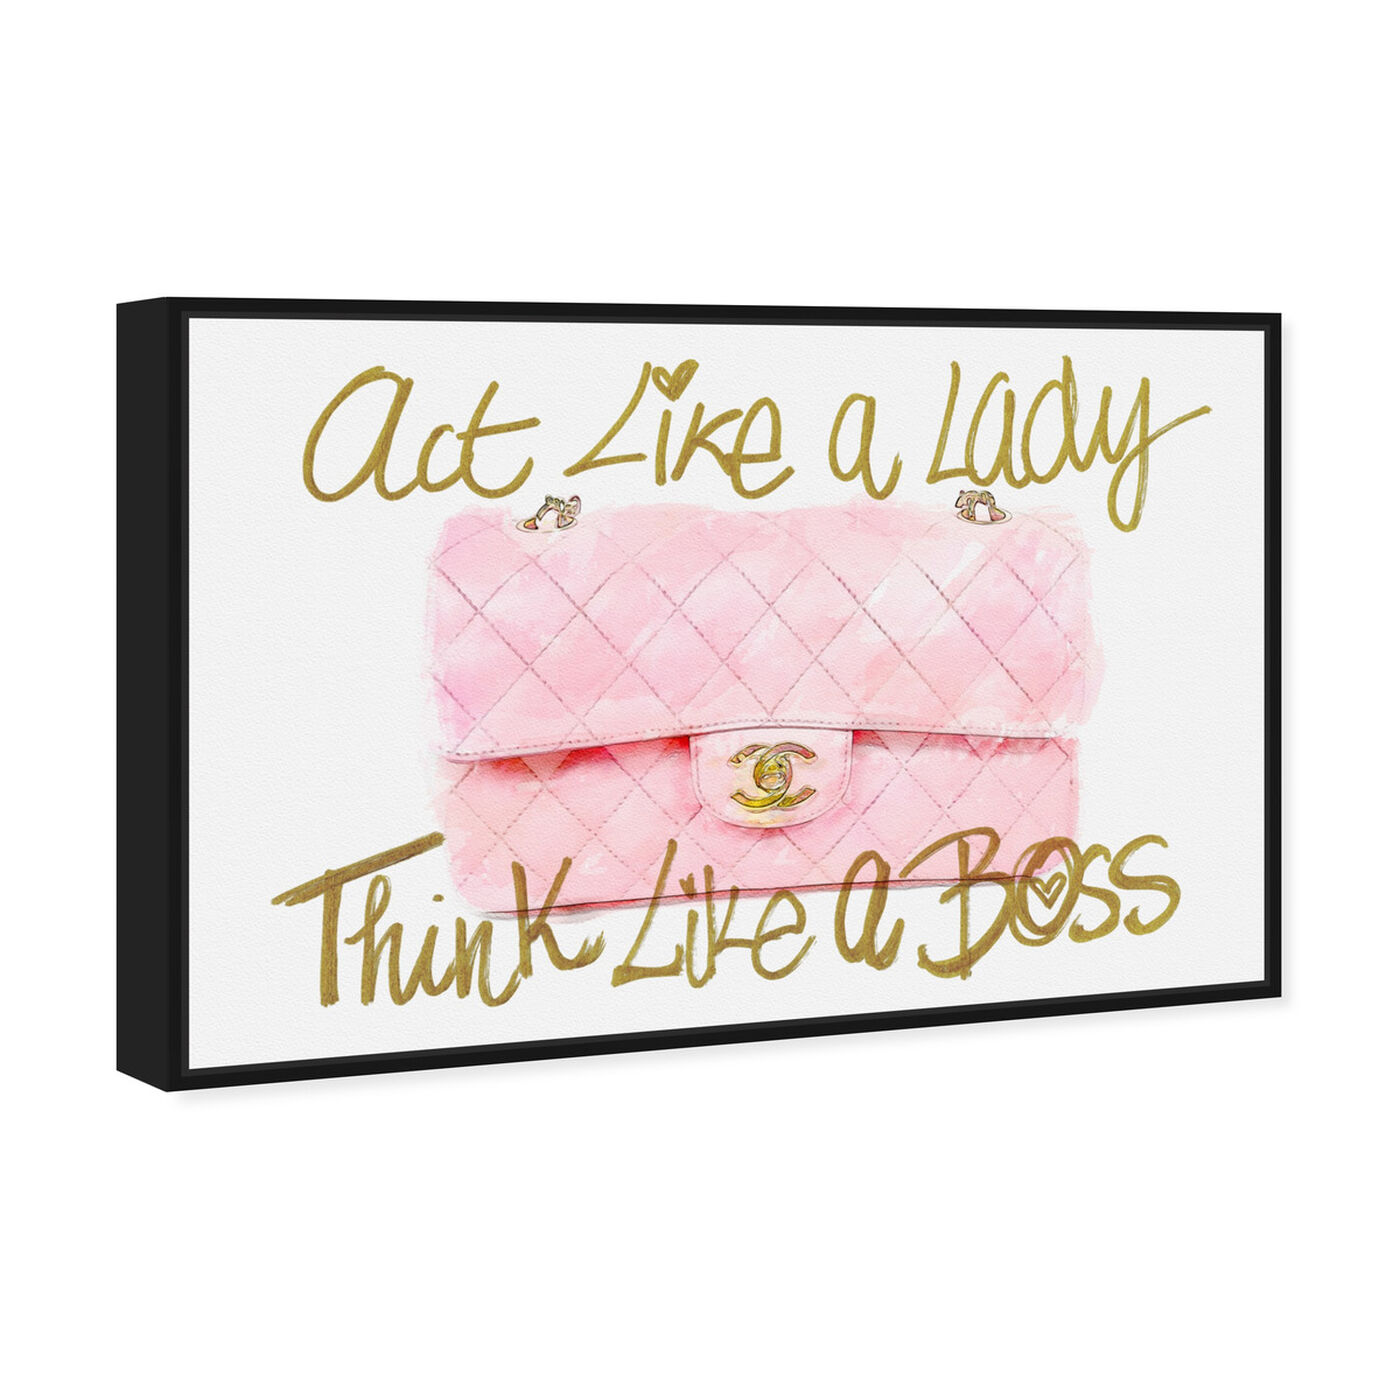 Angled view of Like A Lady Boss featuring typography and quotes and empowered women quotes and sayings art.